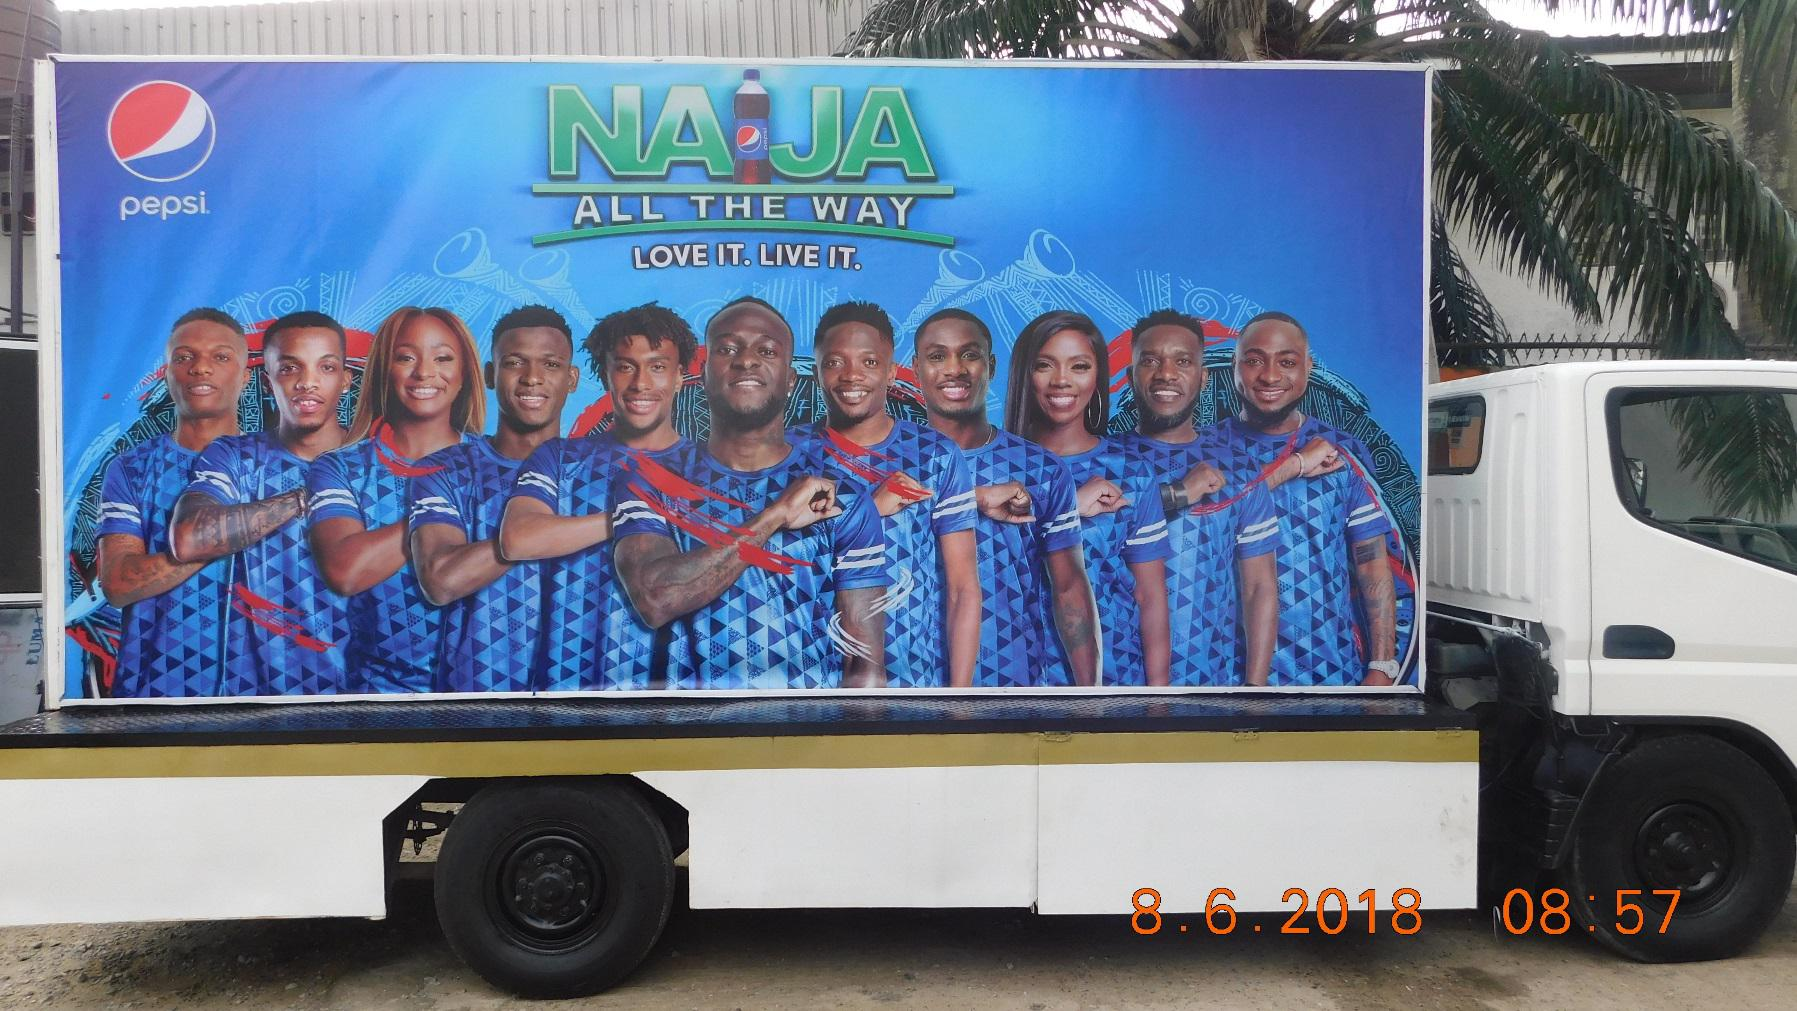 How Pepsi's 'Naija All The Way' Campaign Is Reigniting The Naija Spirit (Pictures) - Brand Spur